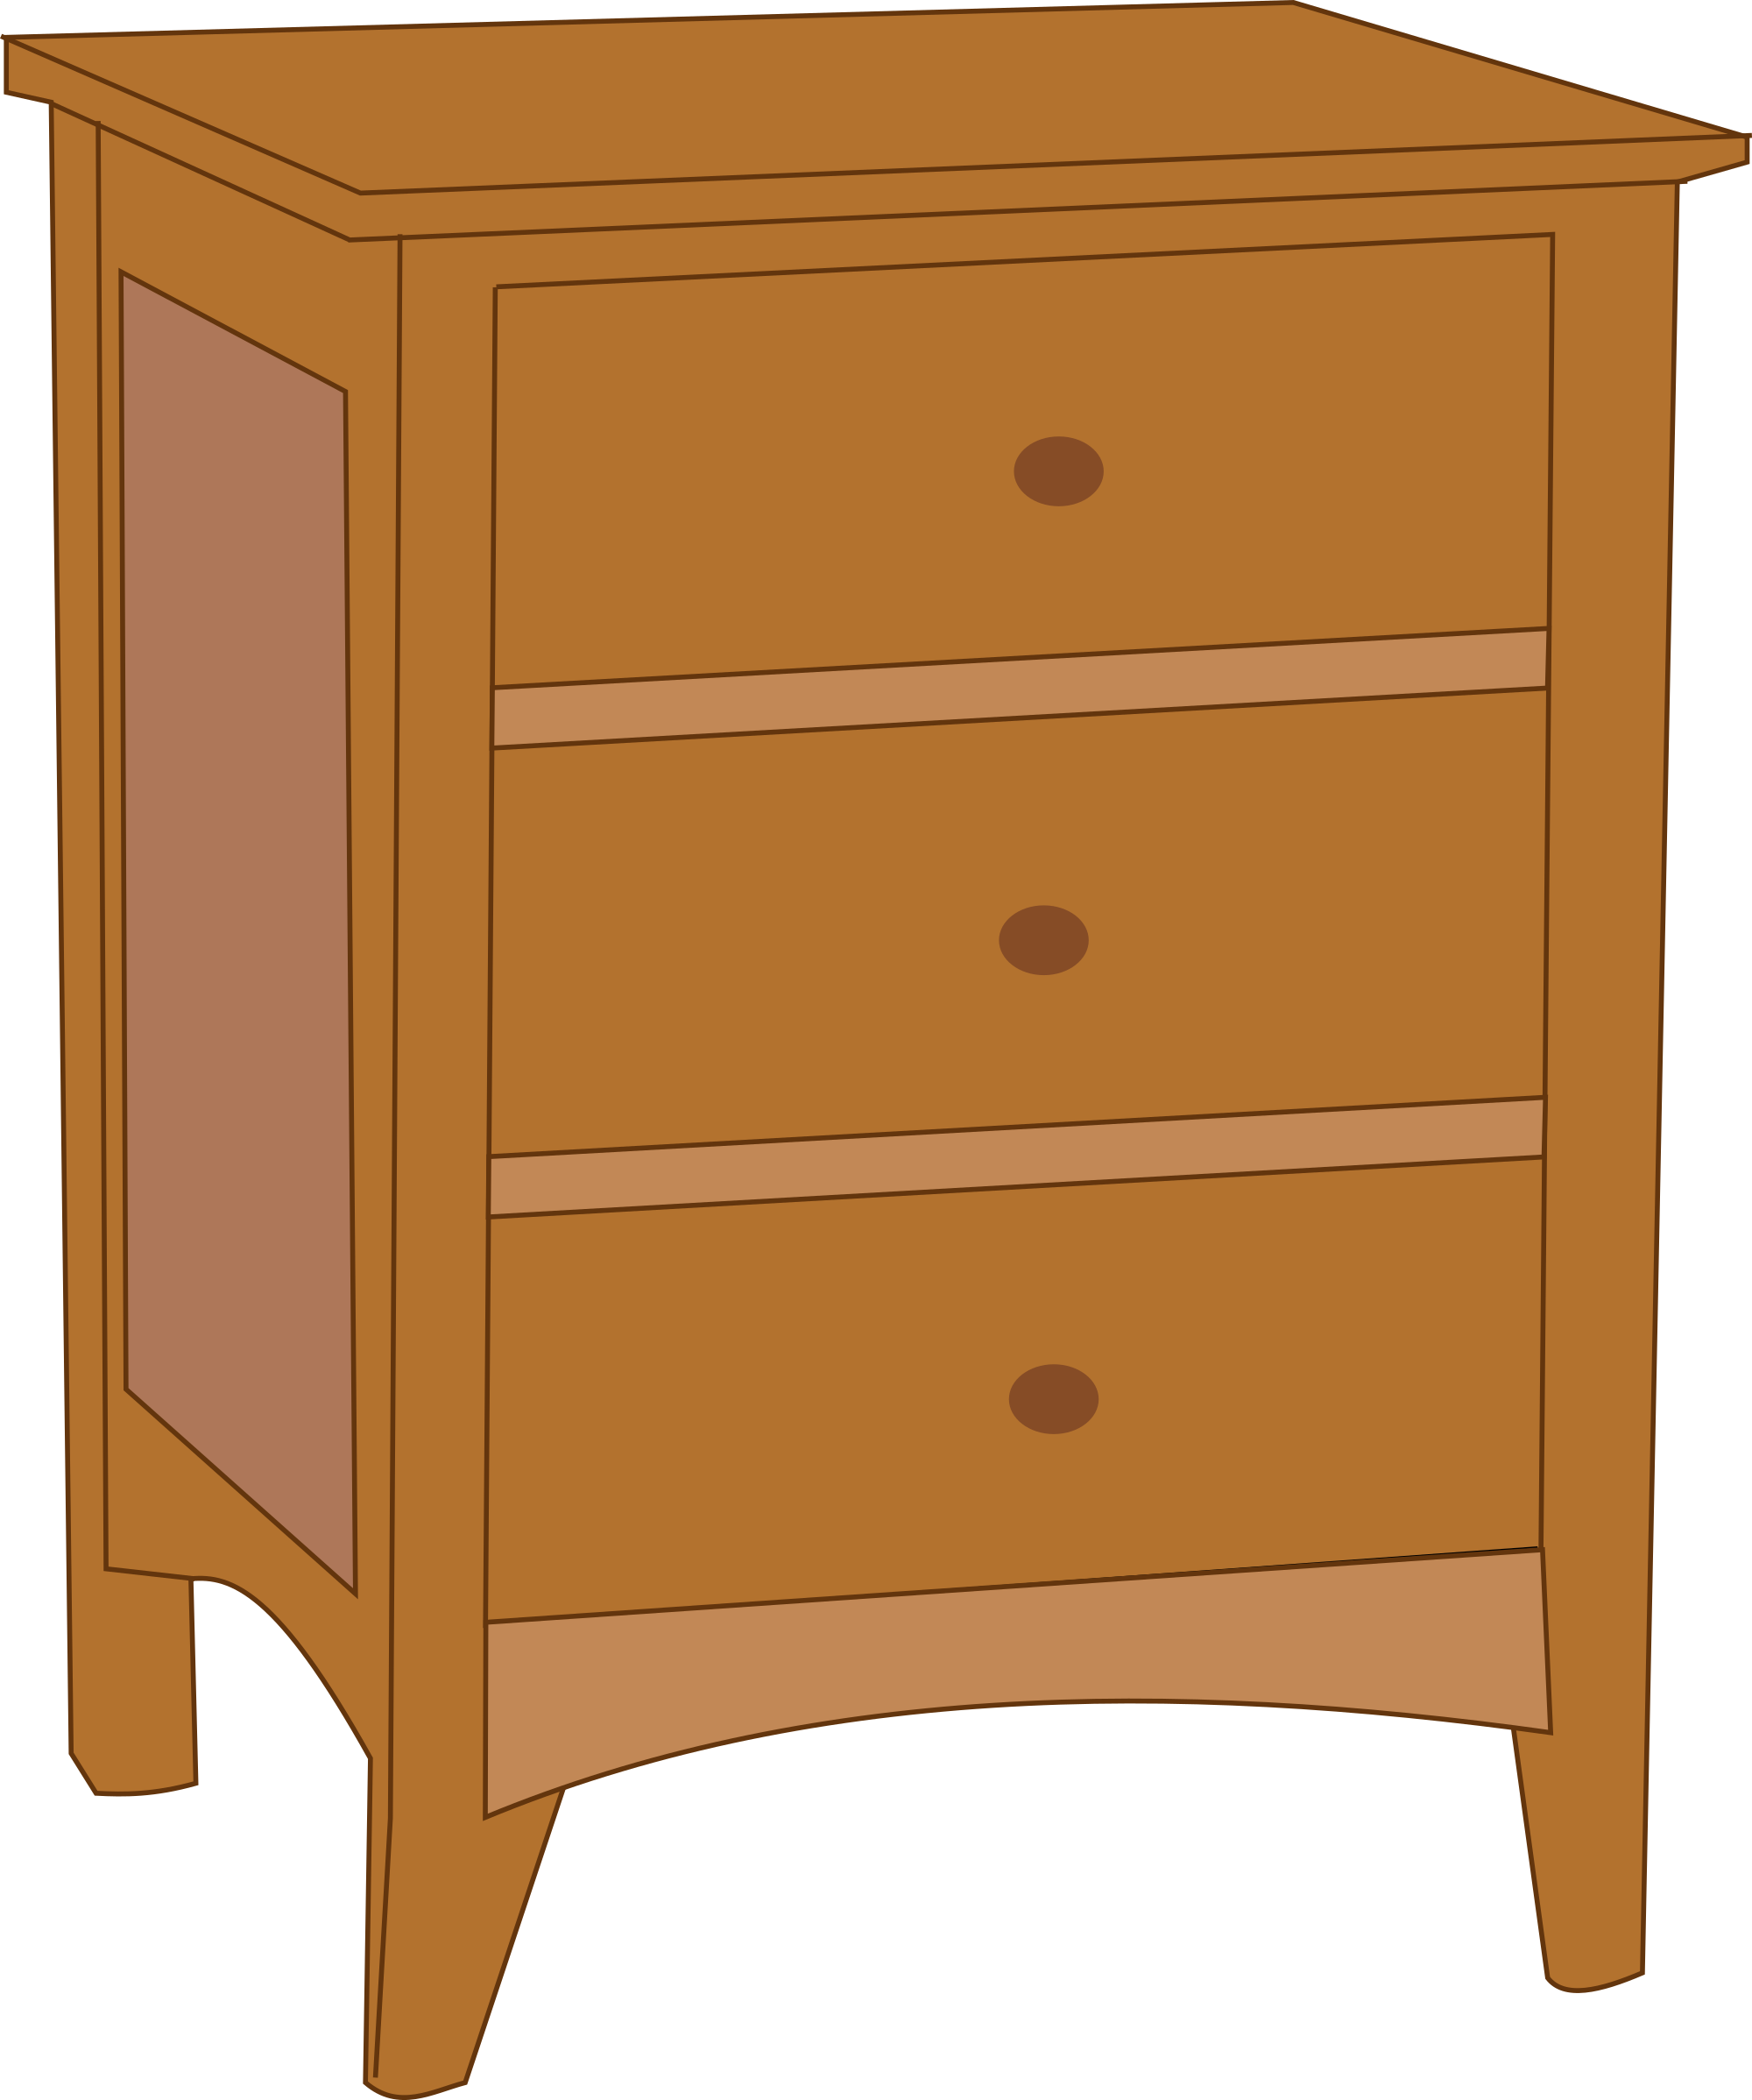 Bedroom drawers cartoon clipground. Furniture clipart chest drawer